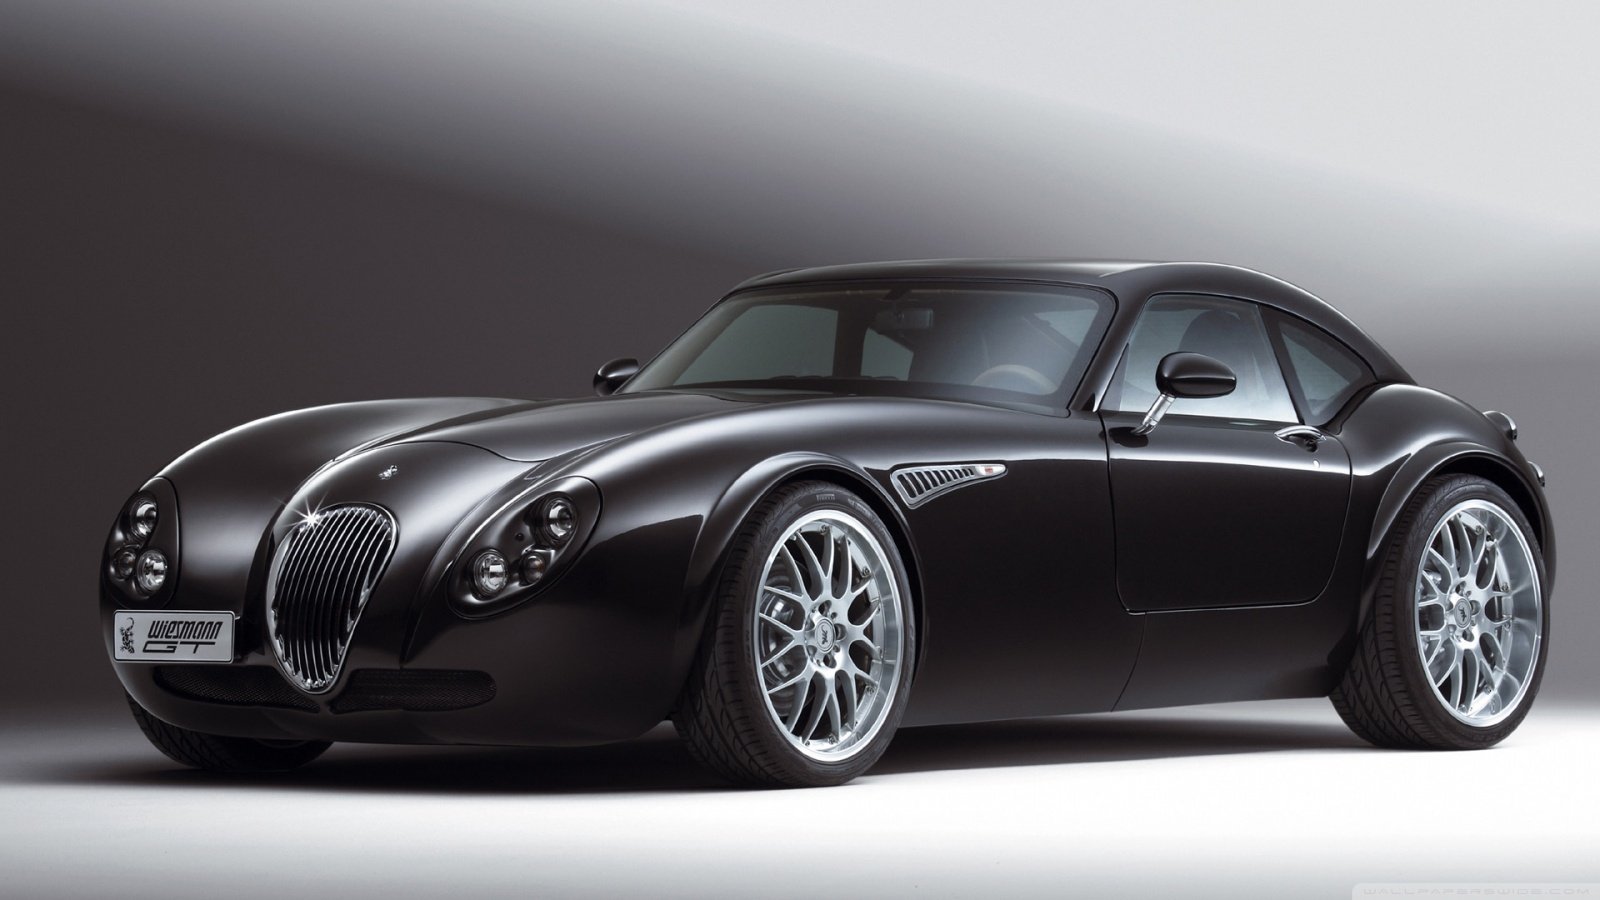 1600x900 - Wiesmann GT MF4 Wallpapers 32